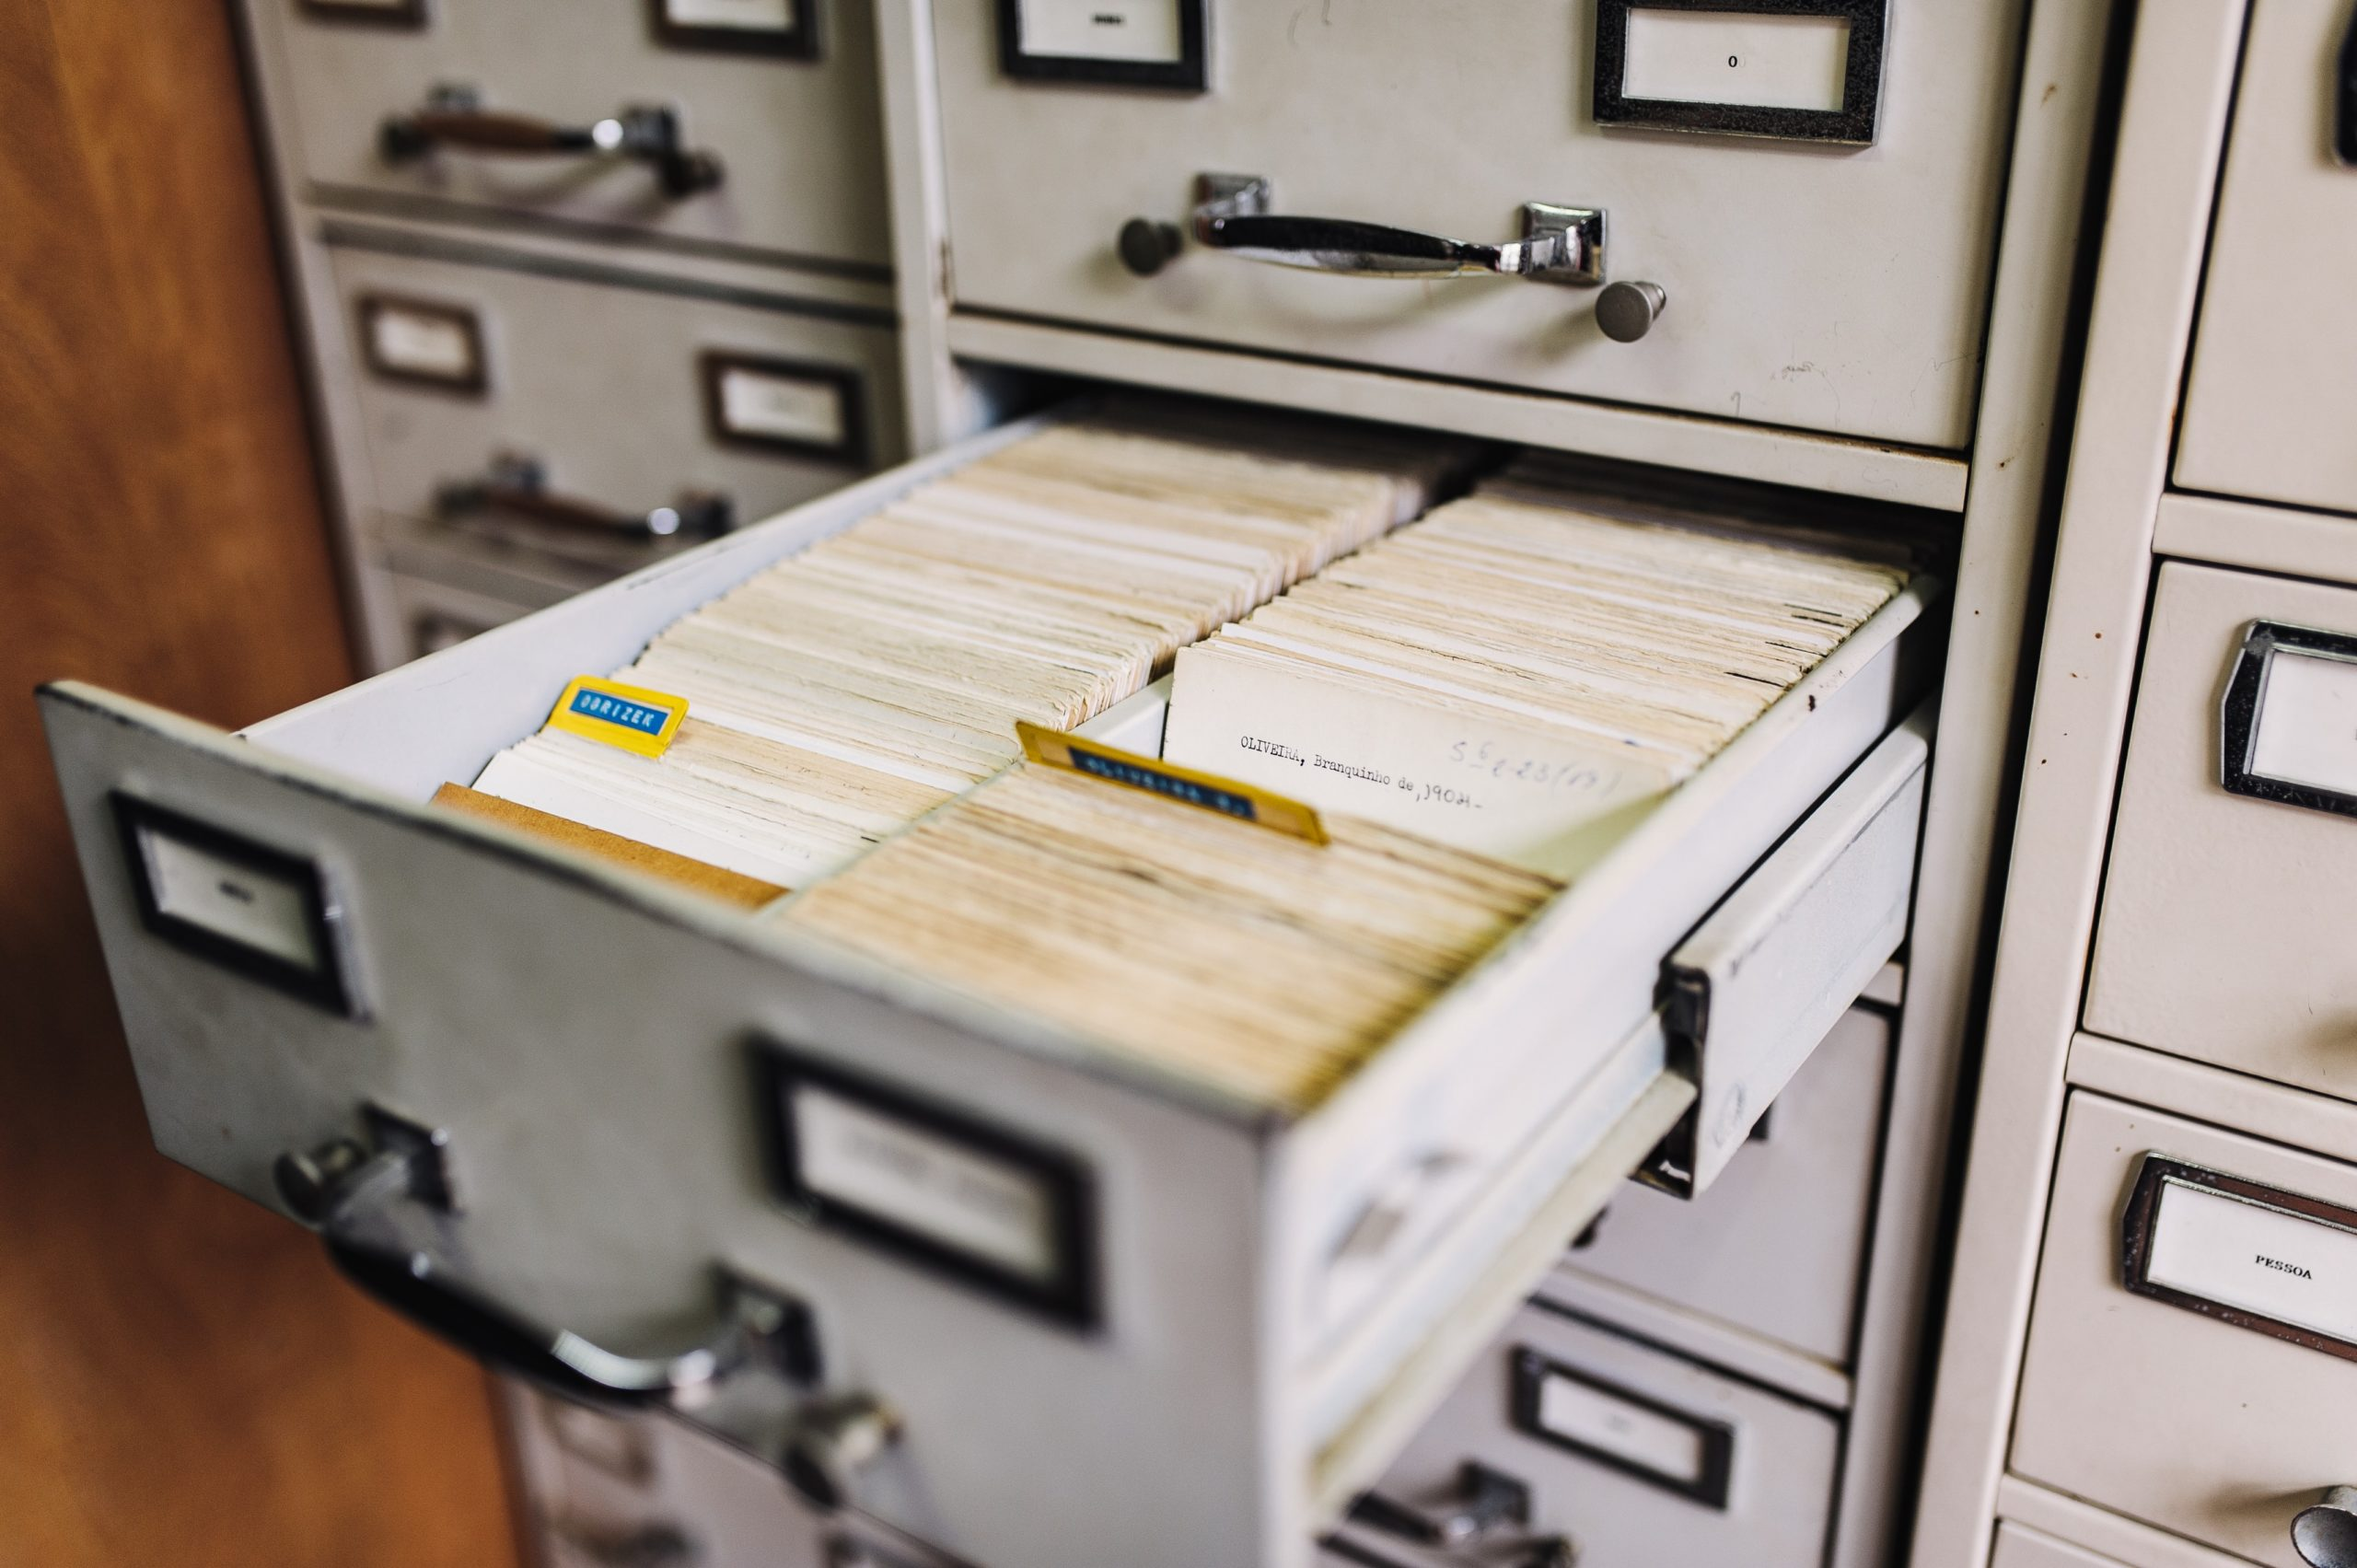 An open filing cabinet drawer filled with index cards